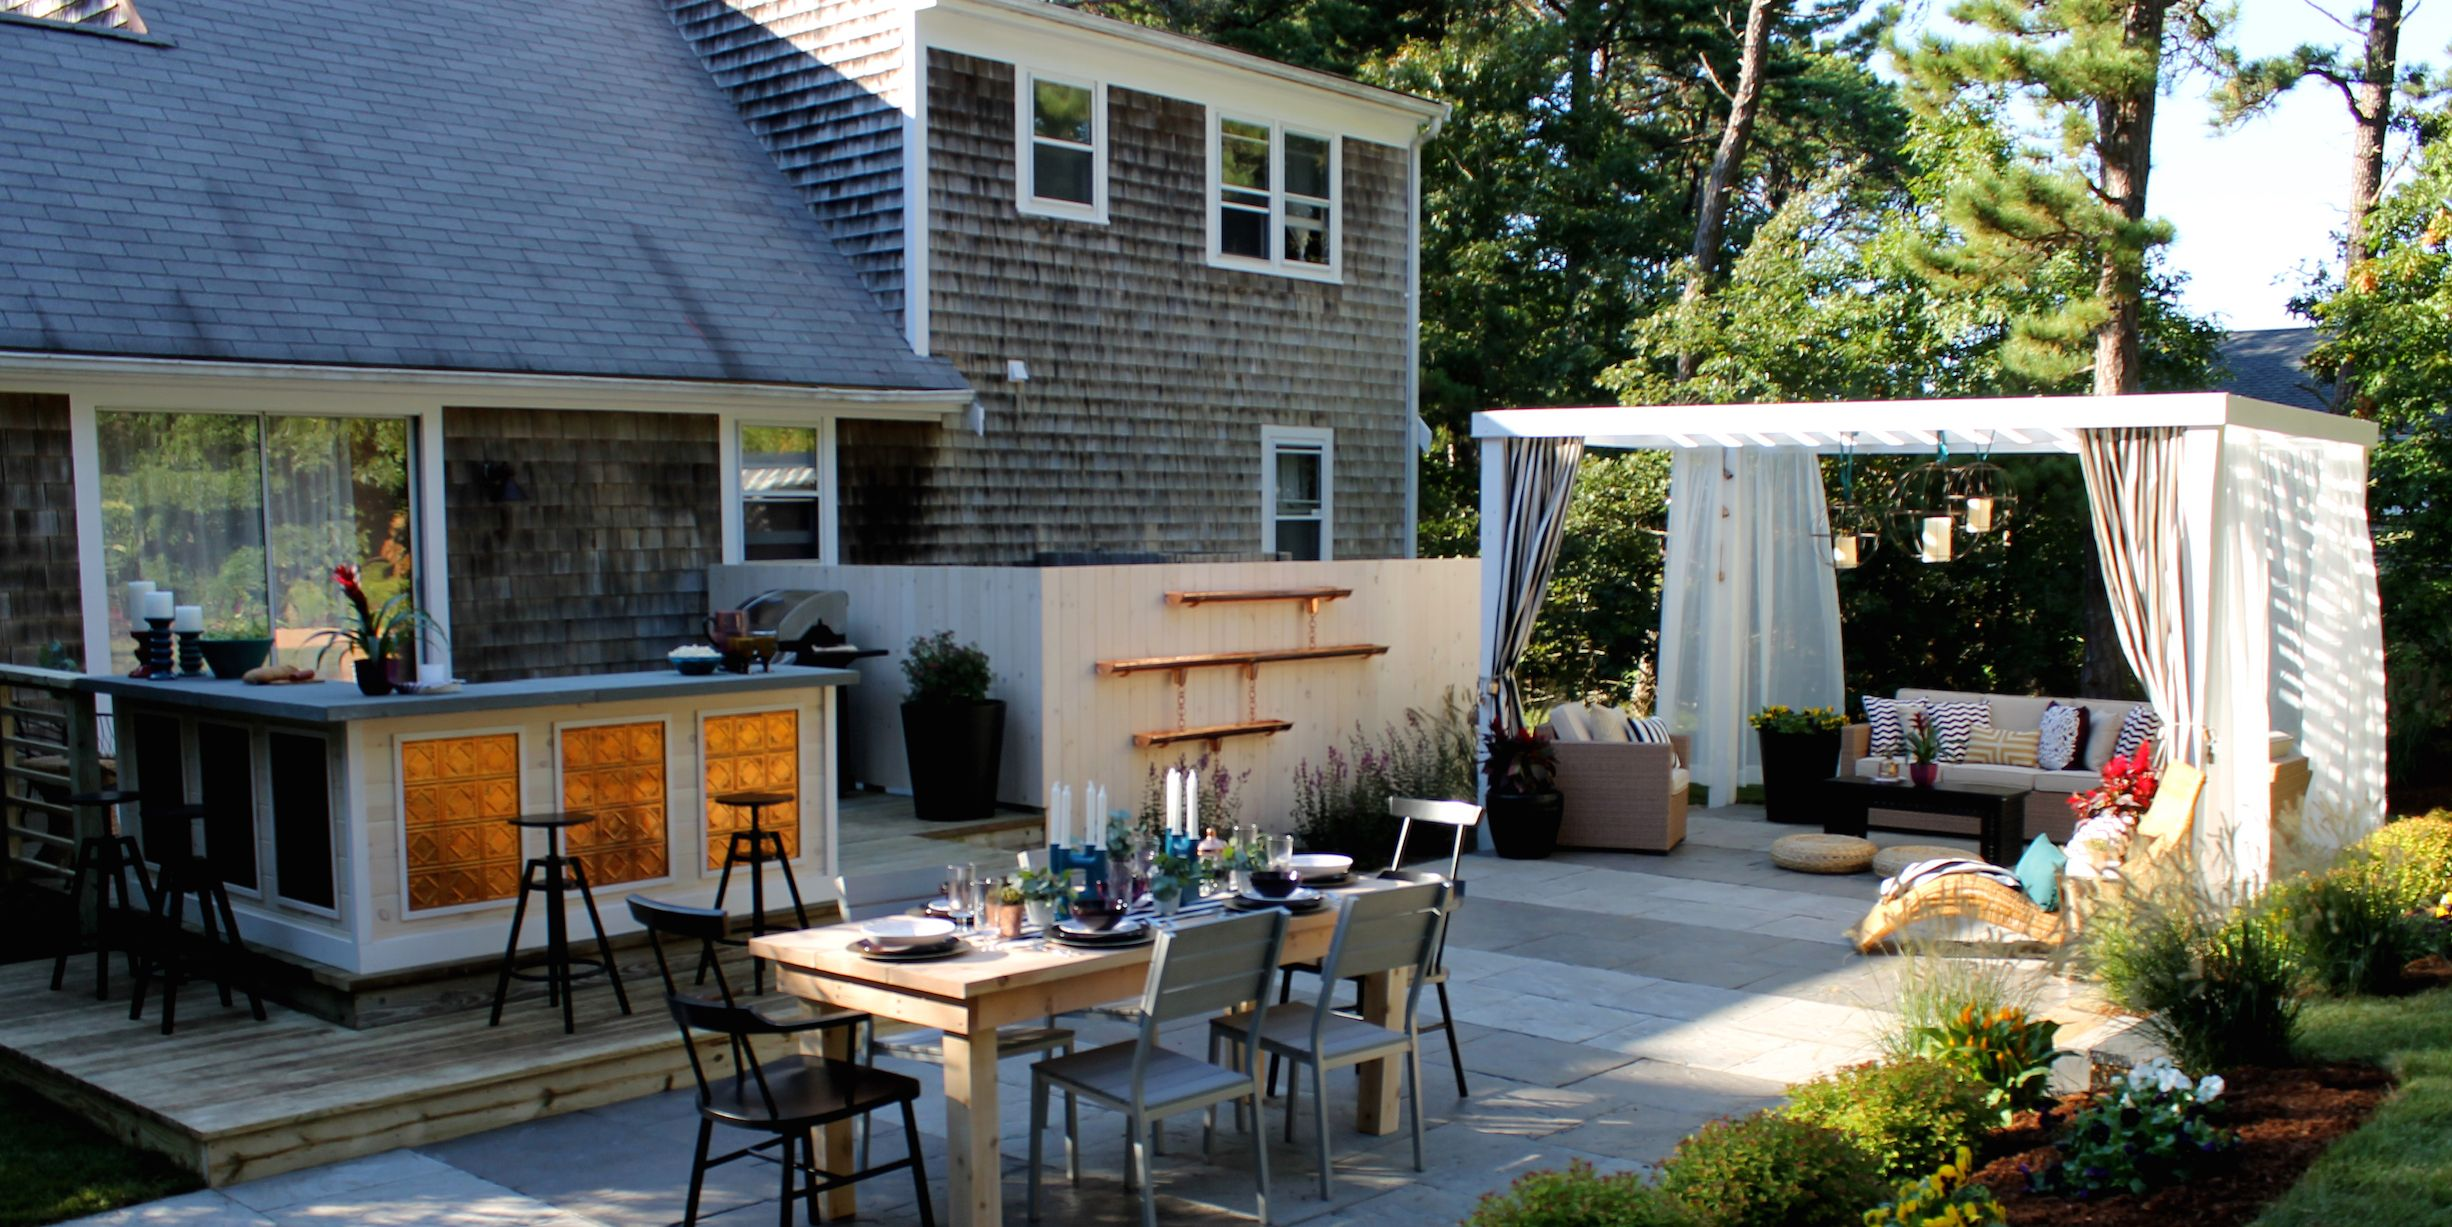 10 Impressive Small Front Yard Landscaping Ideas To Try